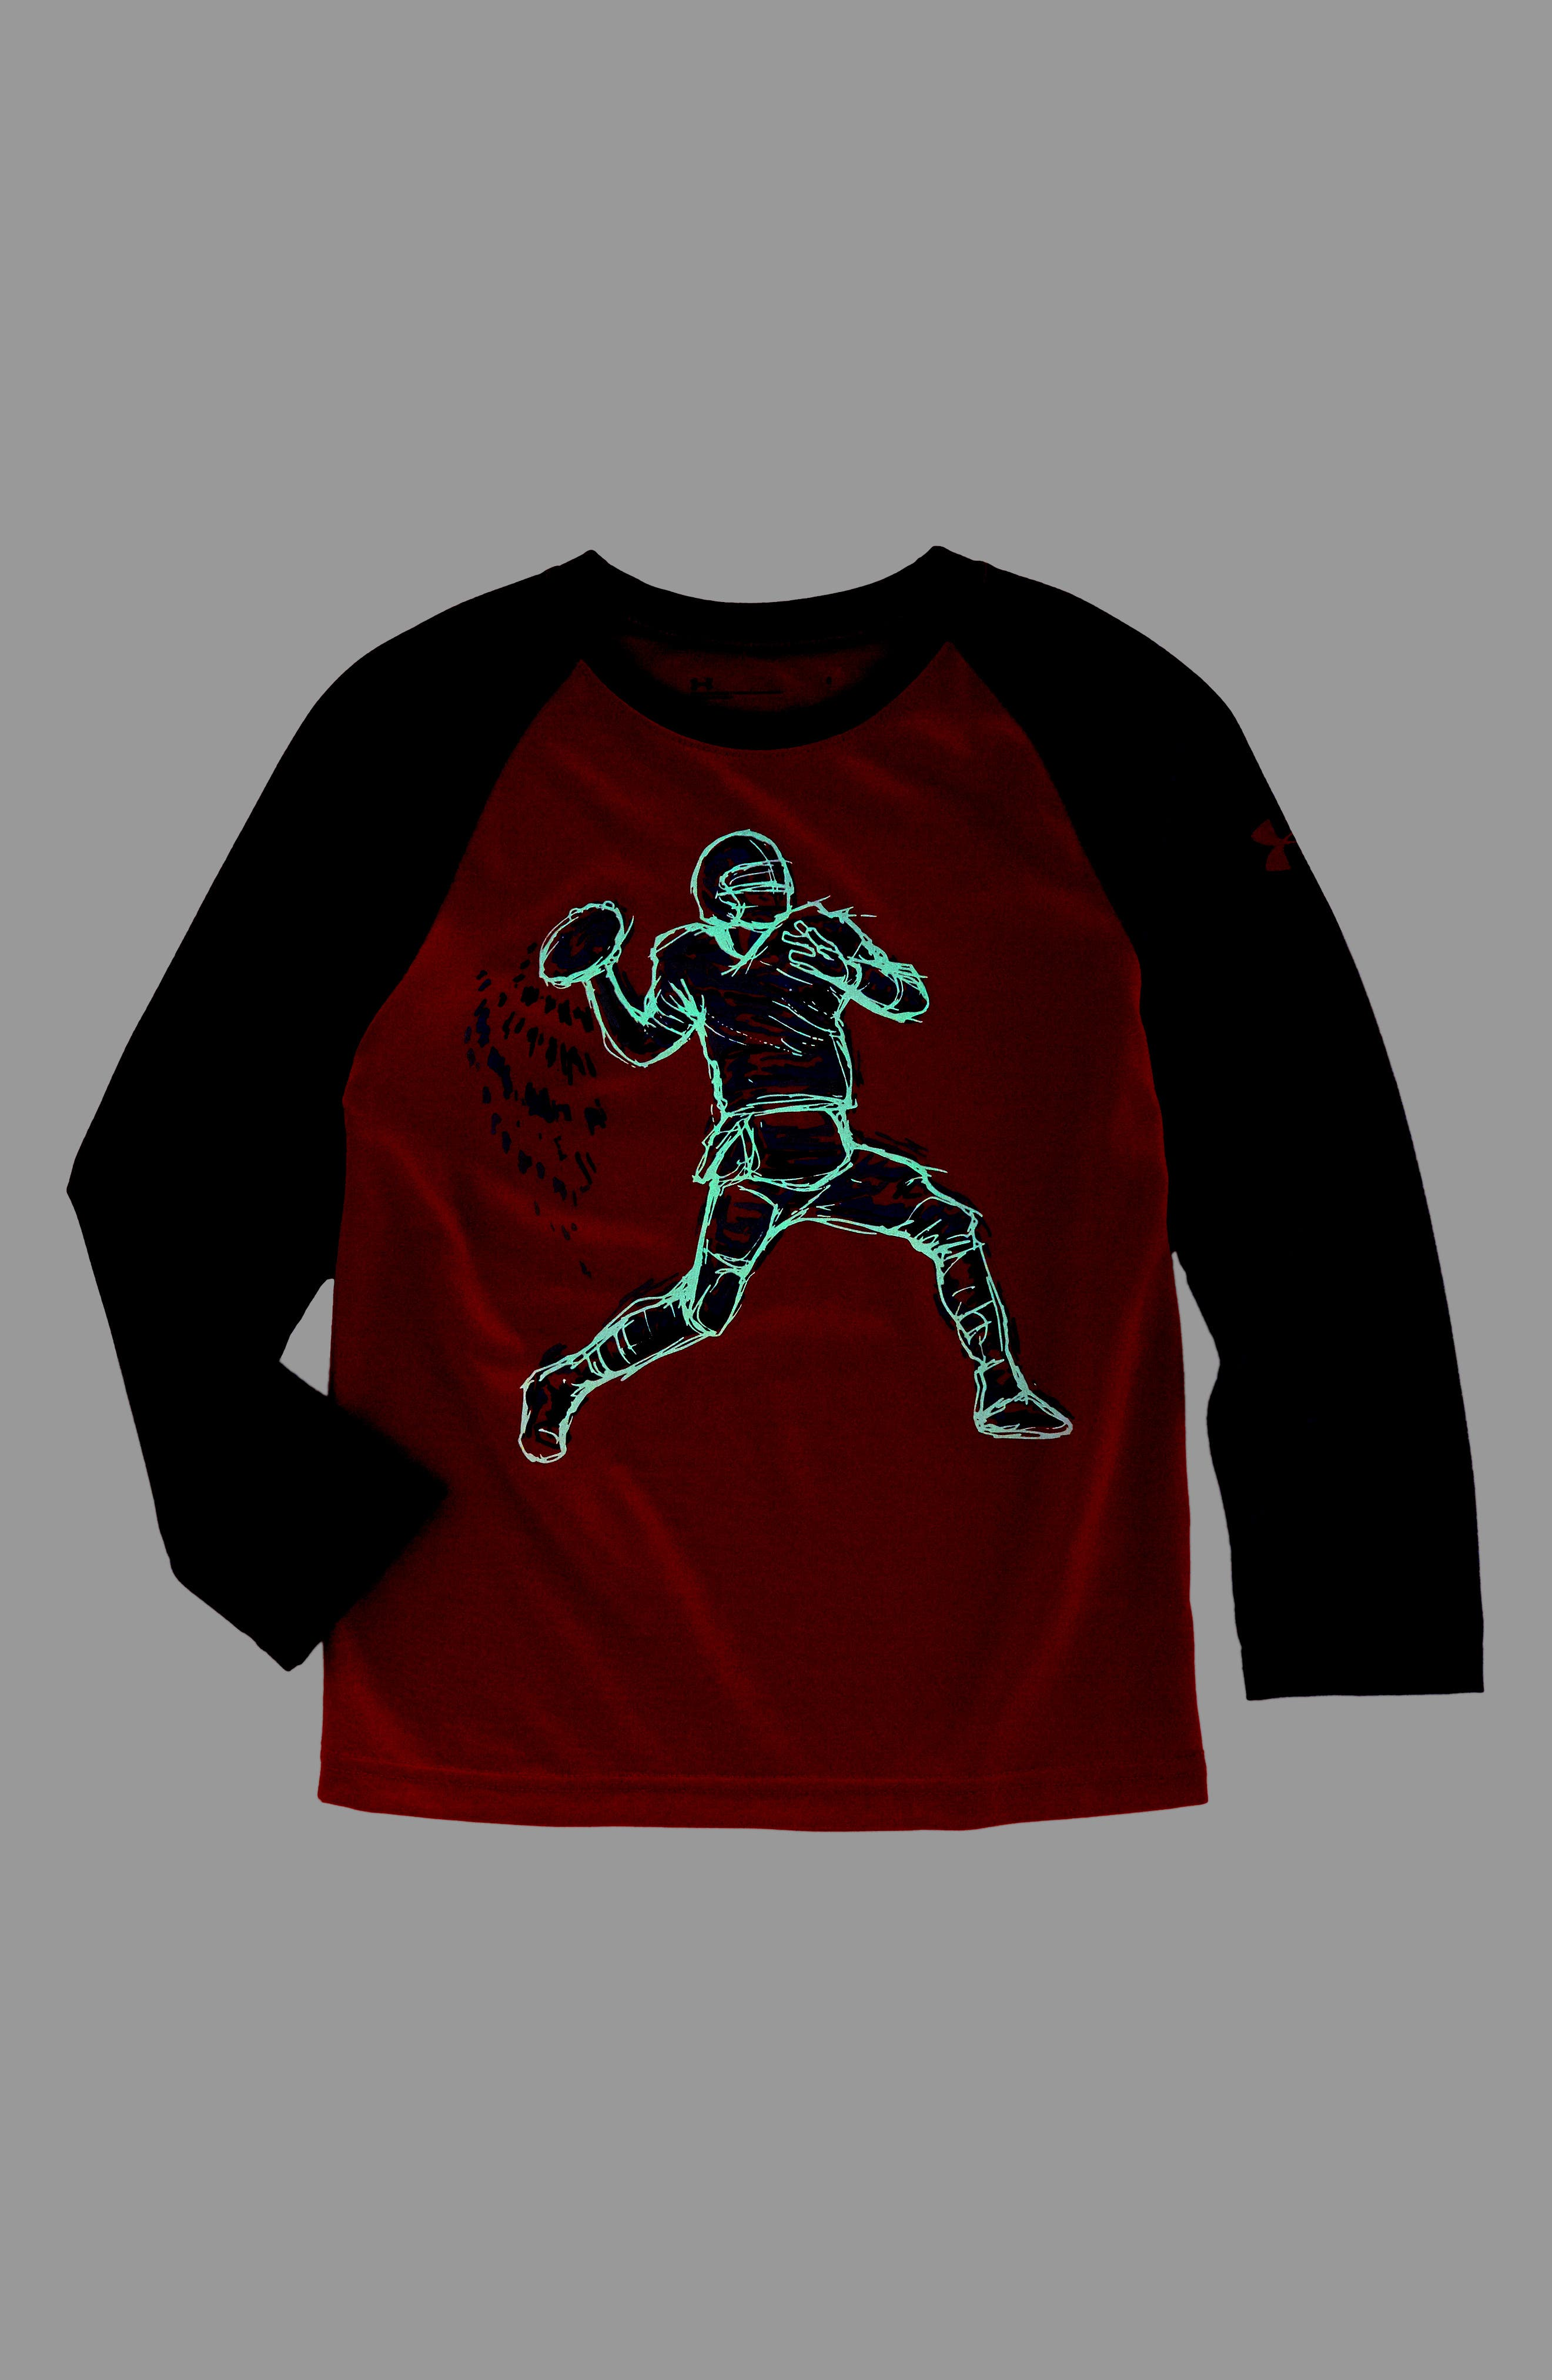 Illuminated QB Glow in the Dark T-Shirt,                             Alternate thumbnail 2, color,                             Red